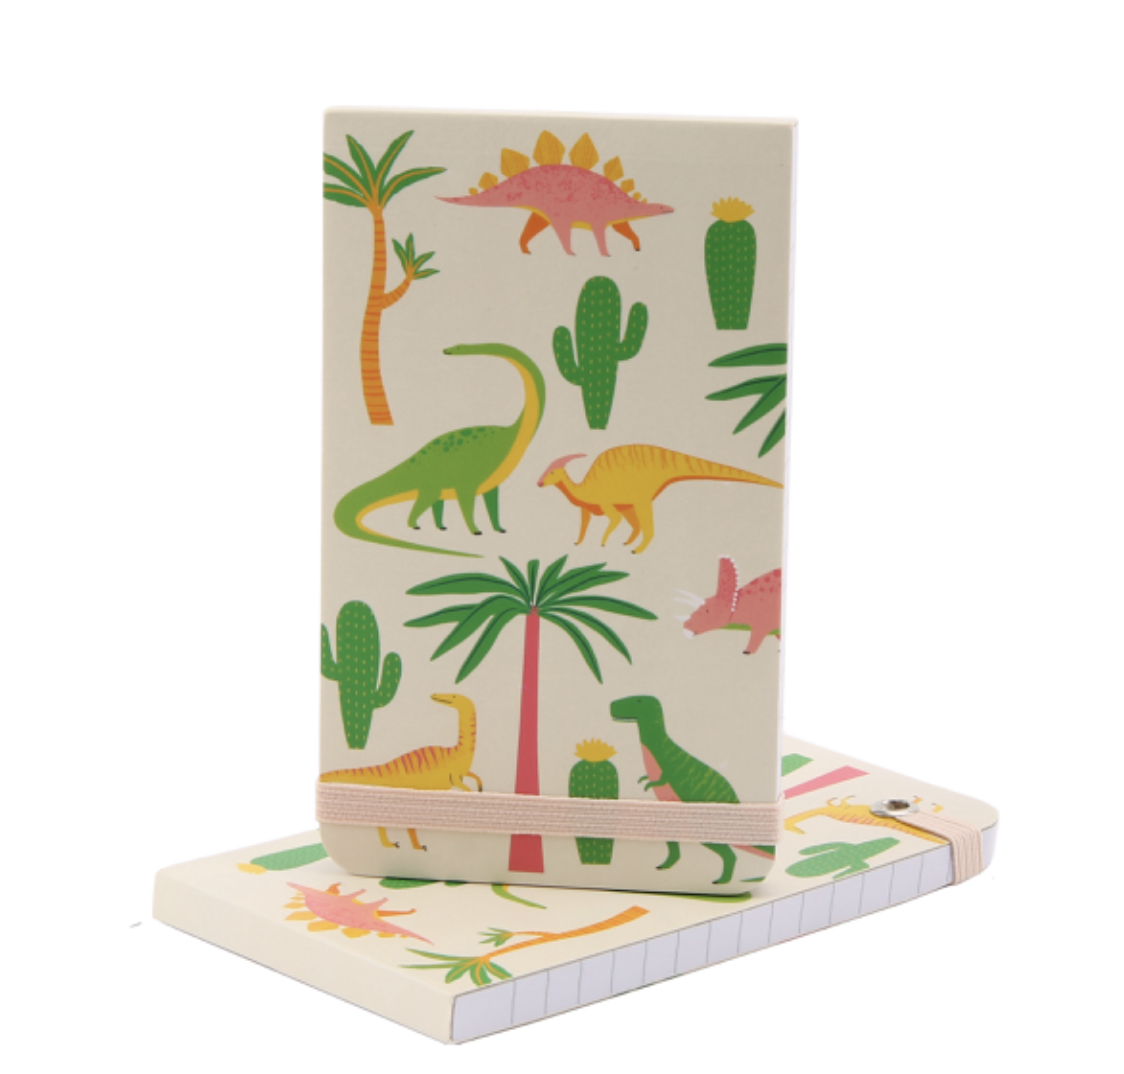 Dinosaur lined note pad with elastic to close.